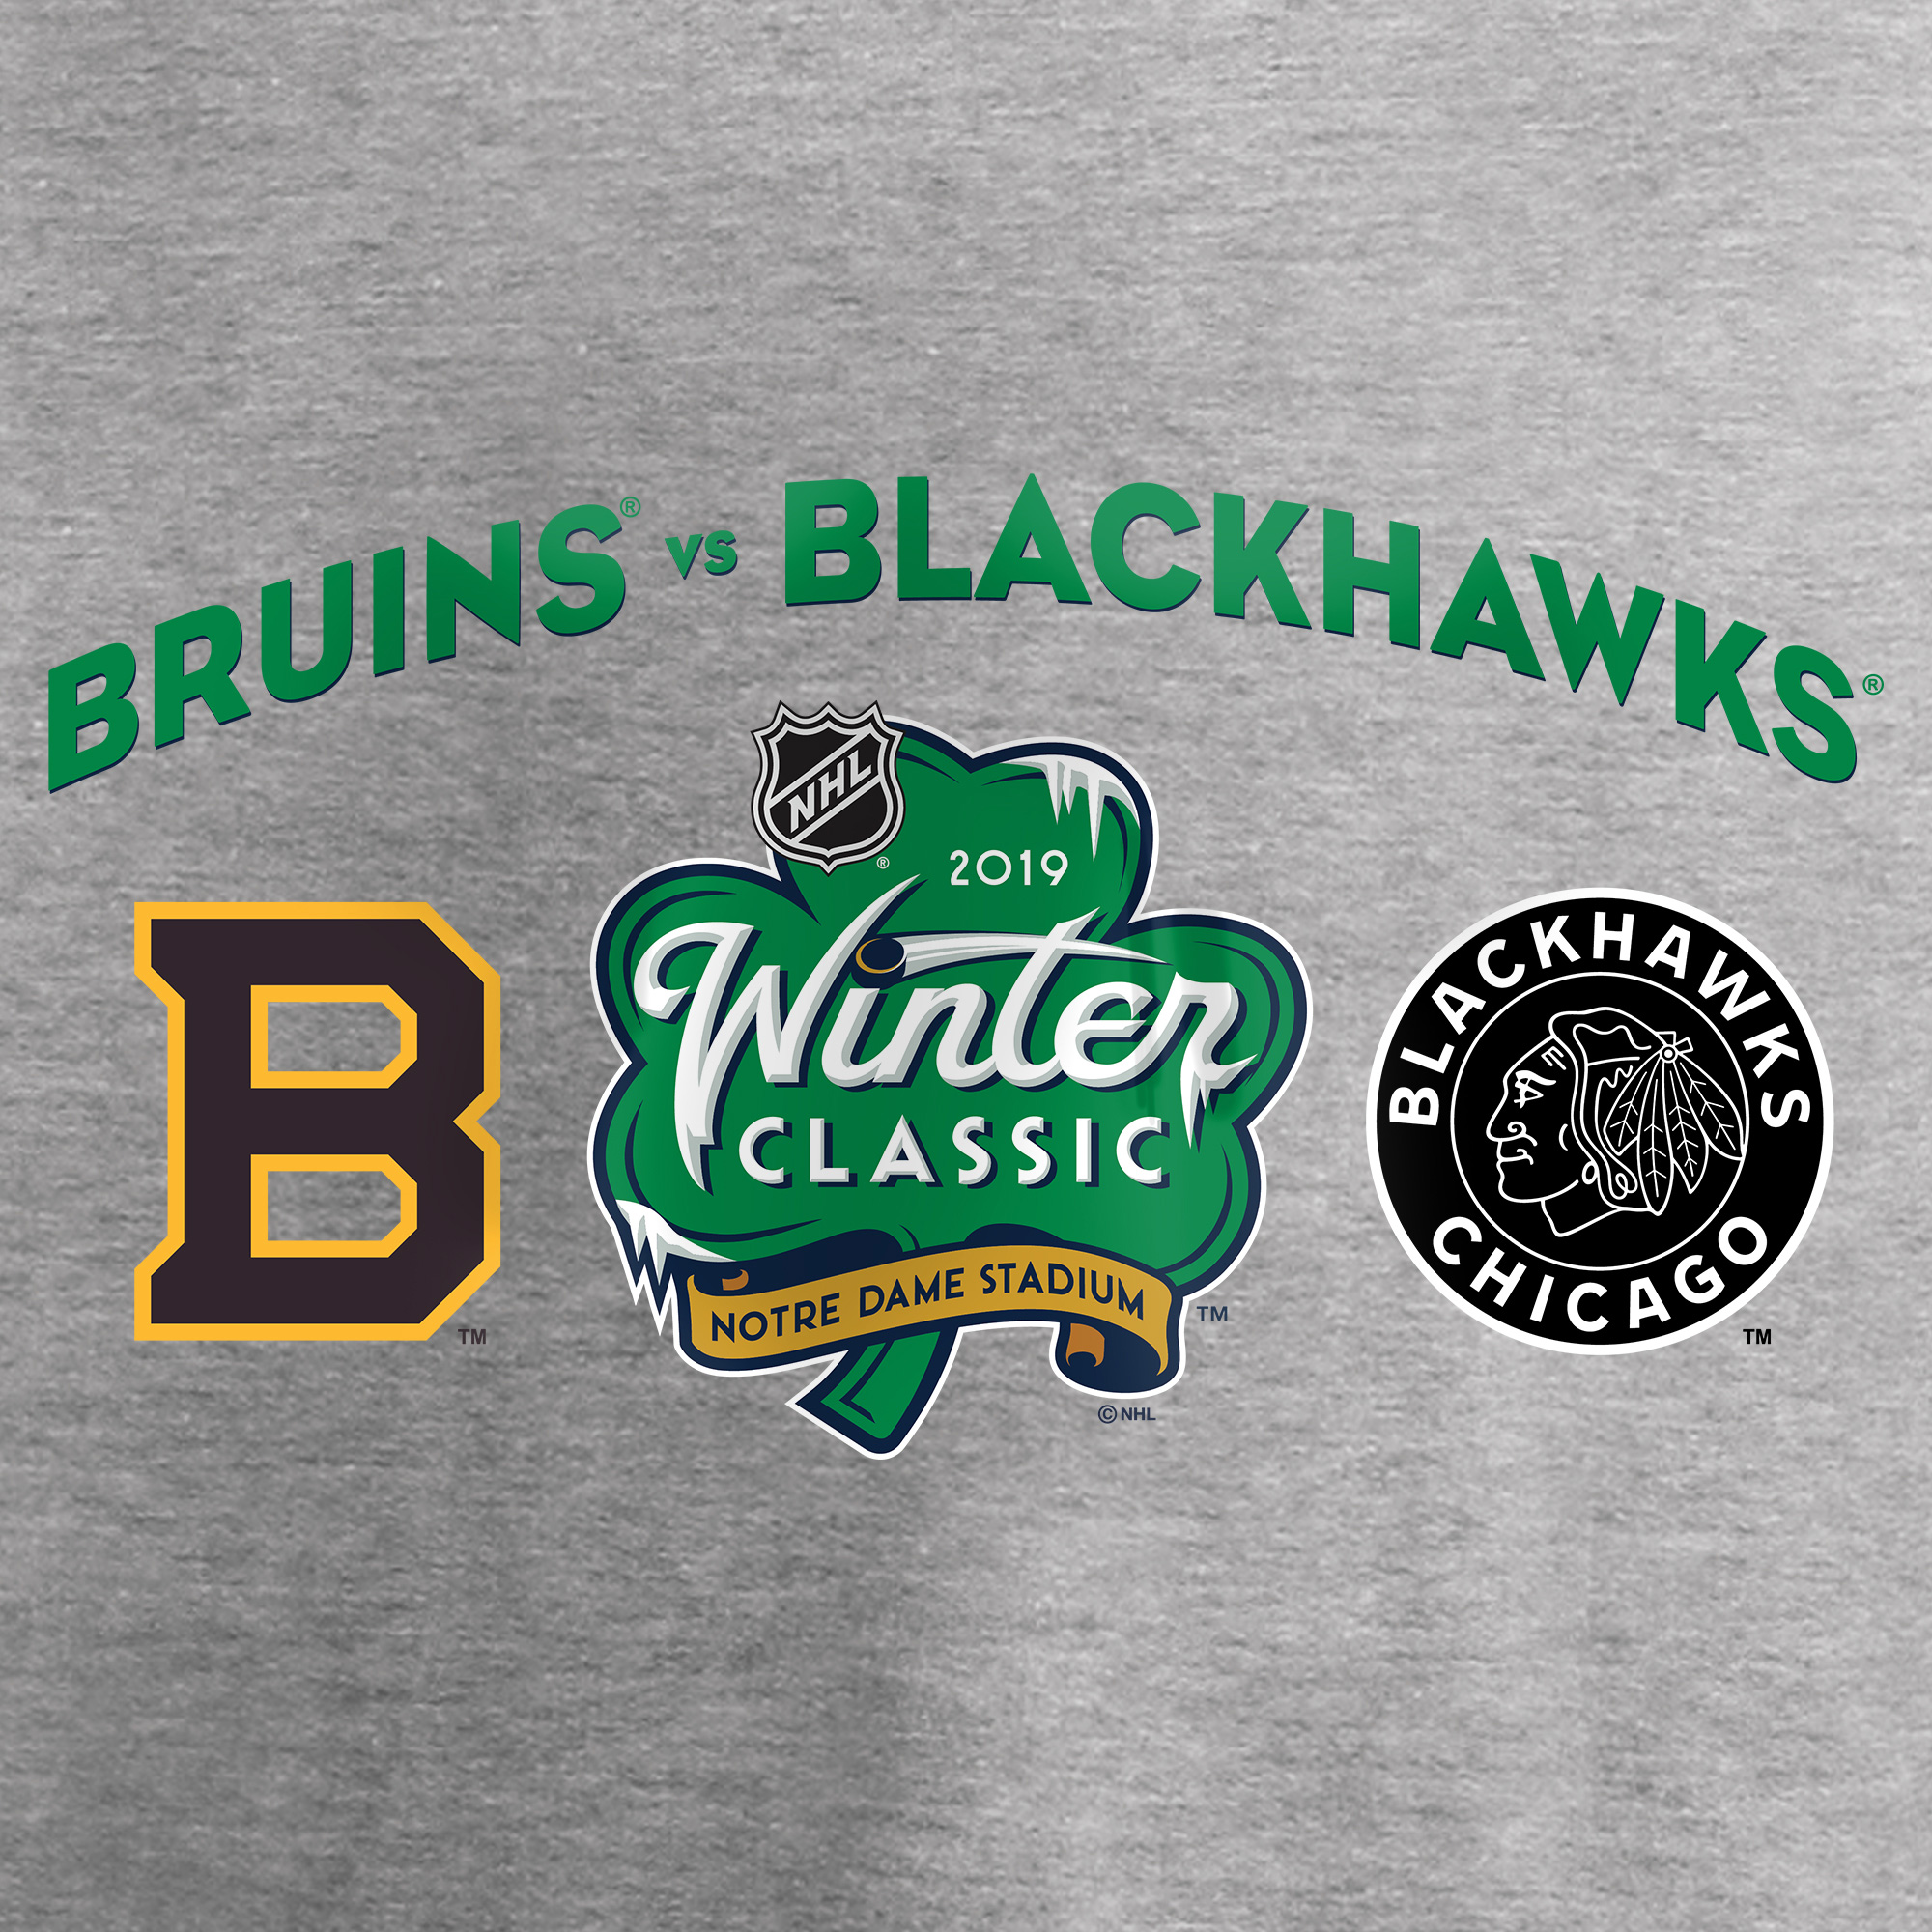 f855d1774 Fanatics Branded Women s 2019 Winter Classic Matchup T-Shirt - Heather Gray  - Walmart.com